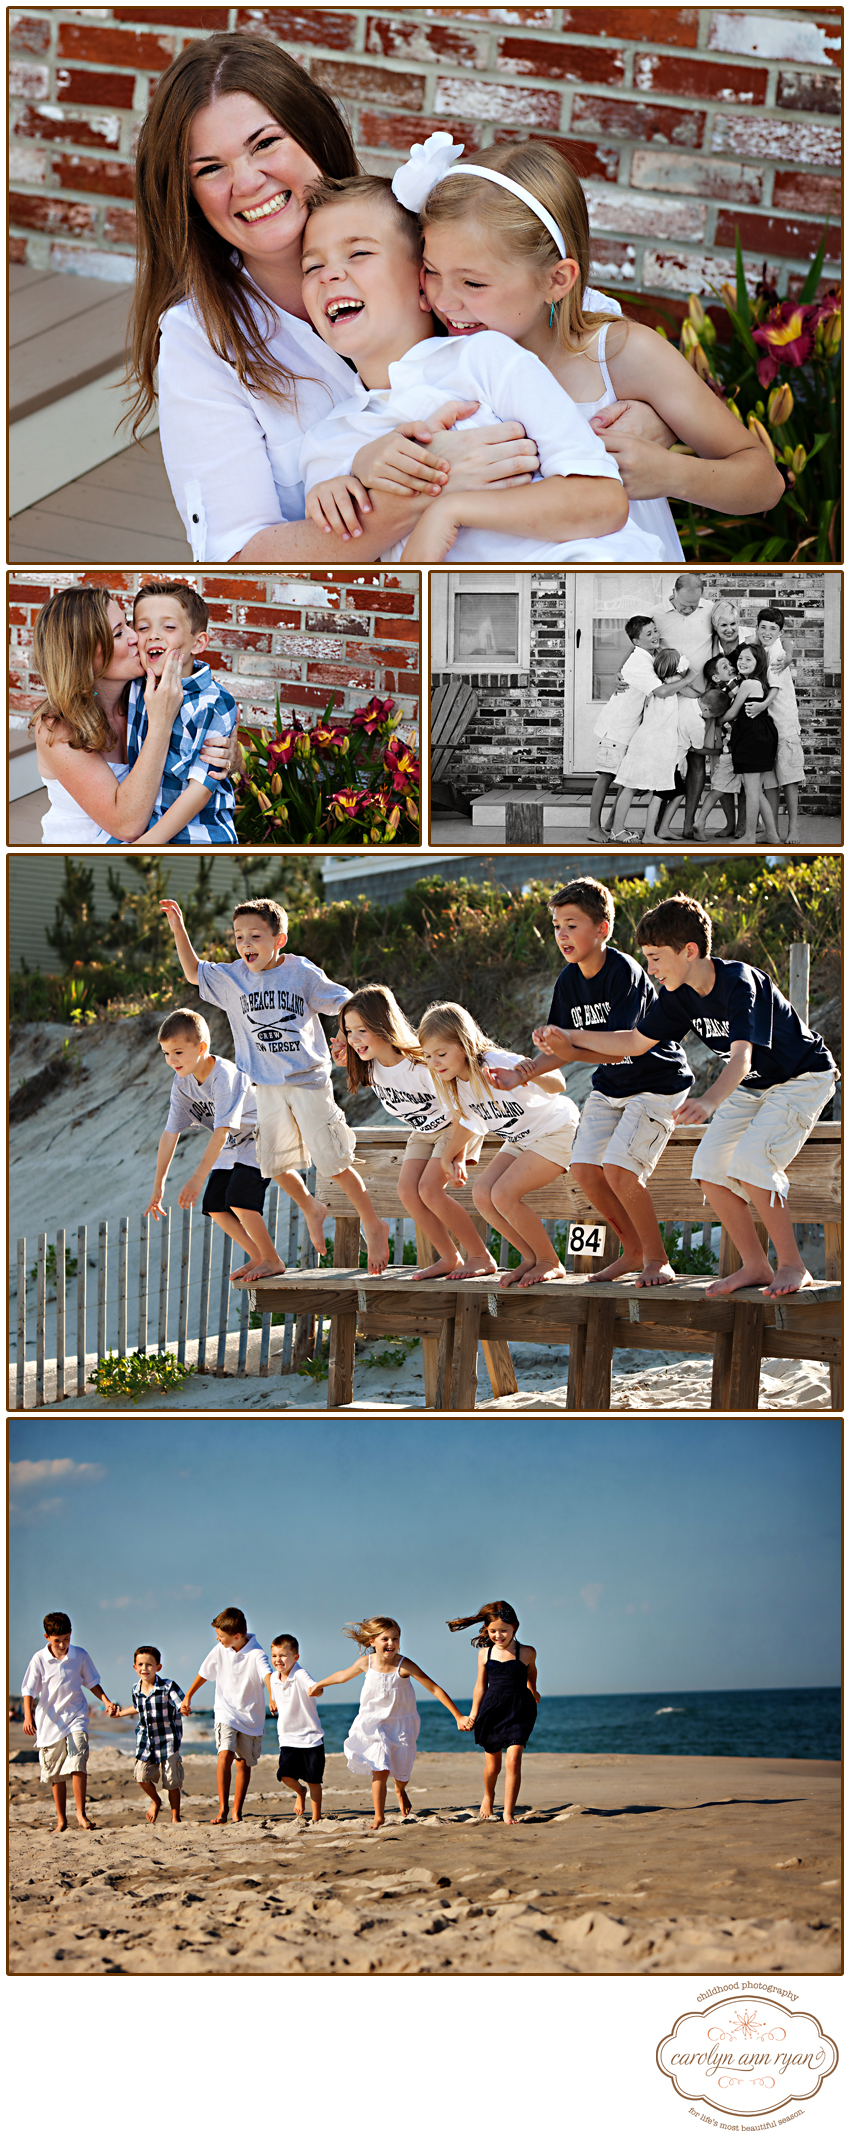 North Carolina Family Photographer Extended Family Portrait Session on the Beach